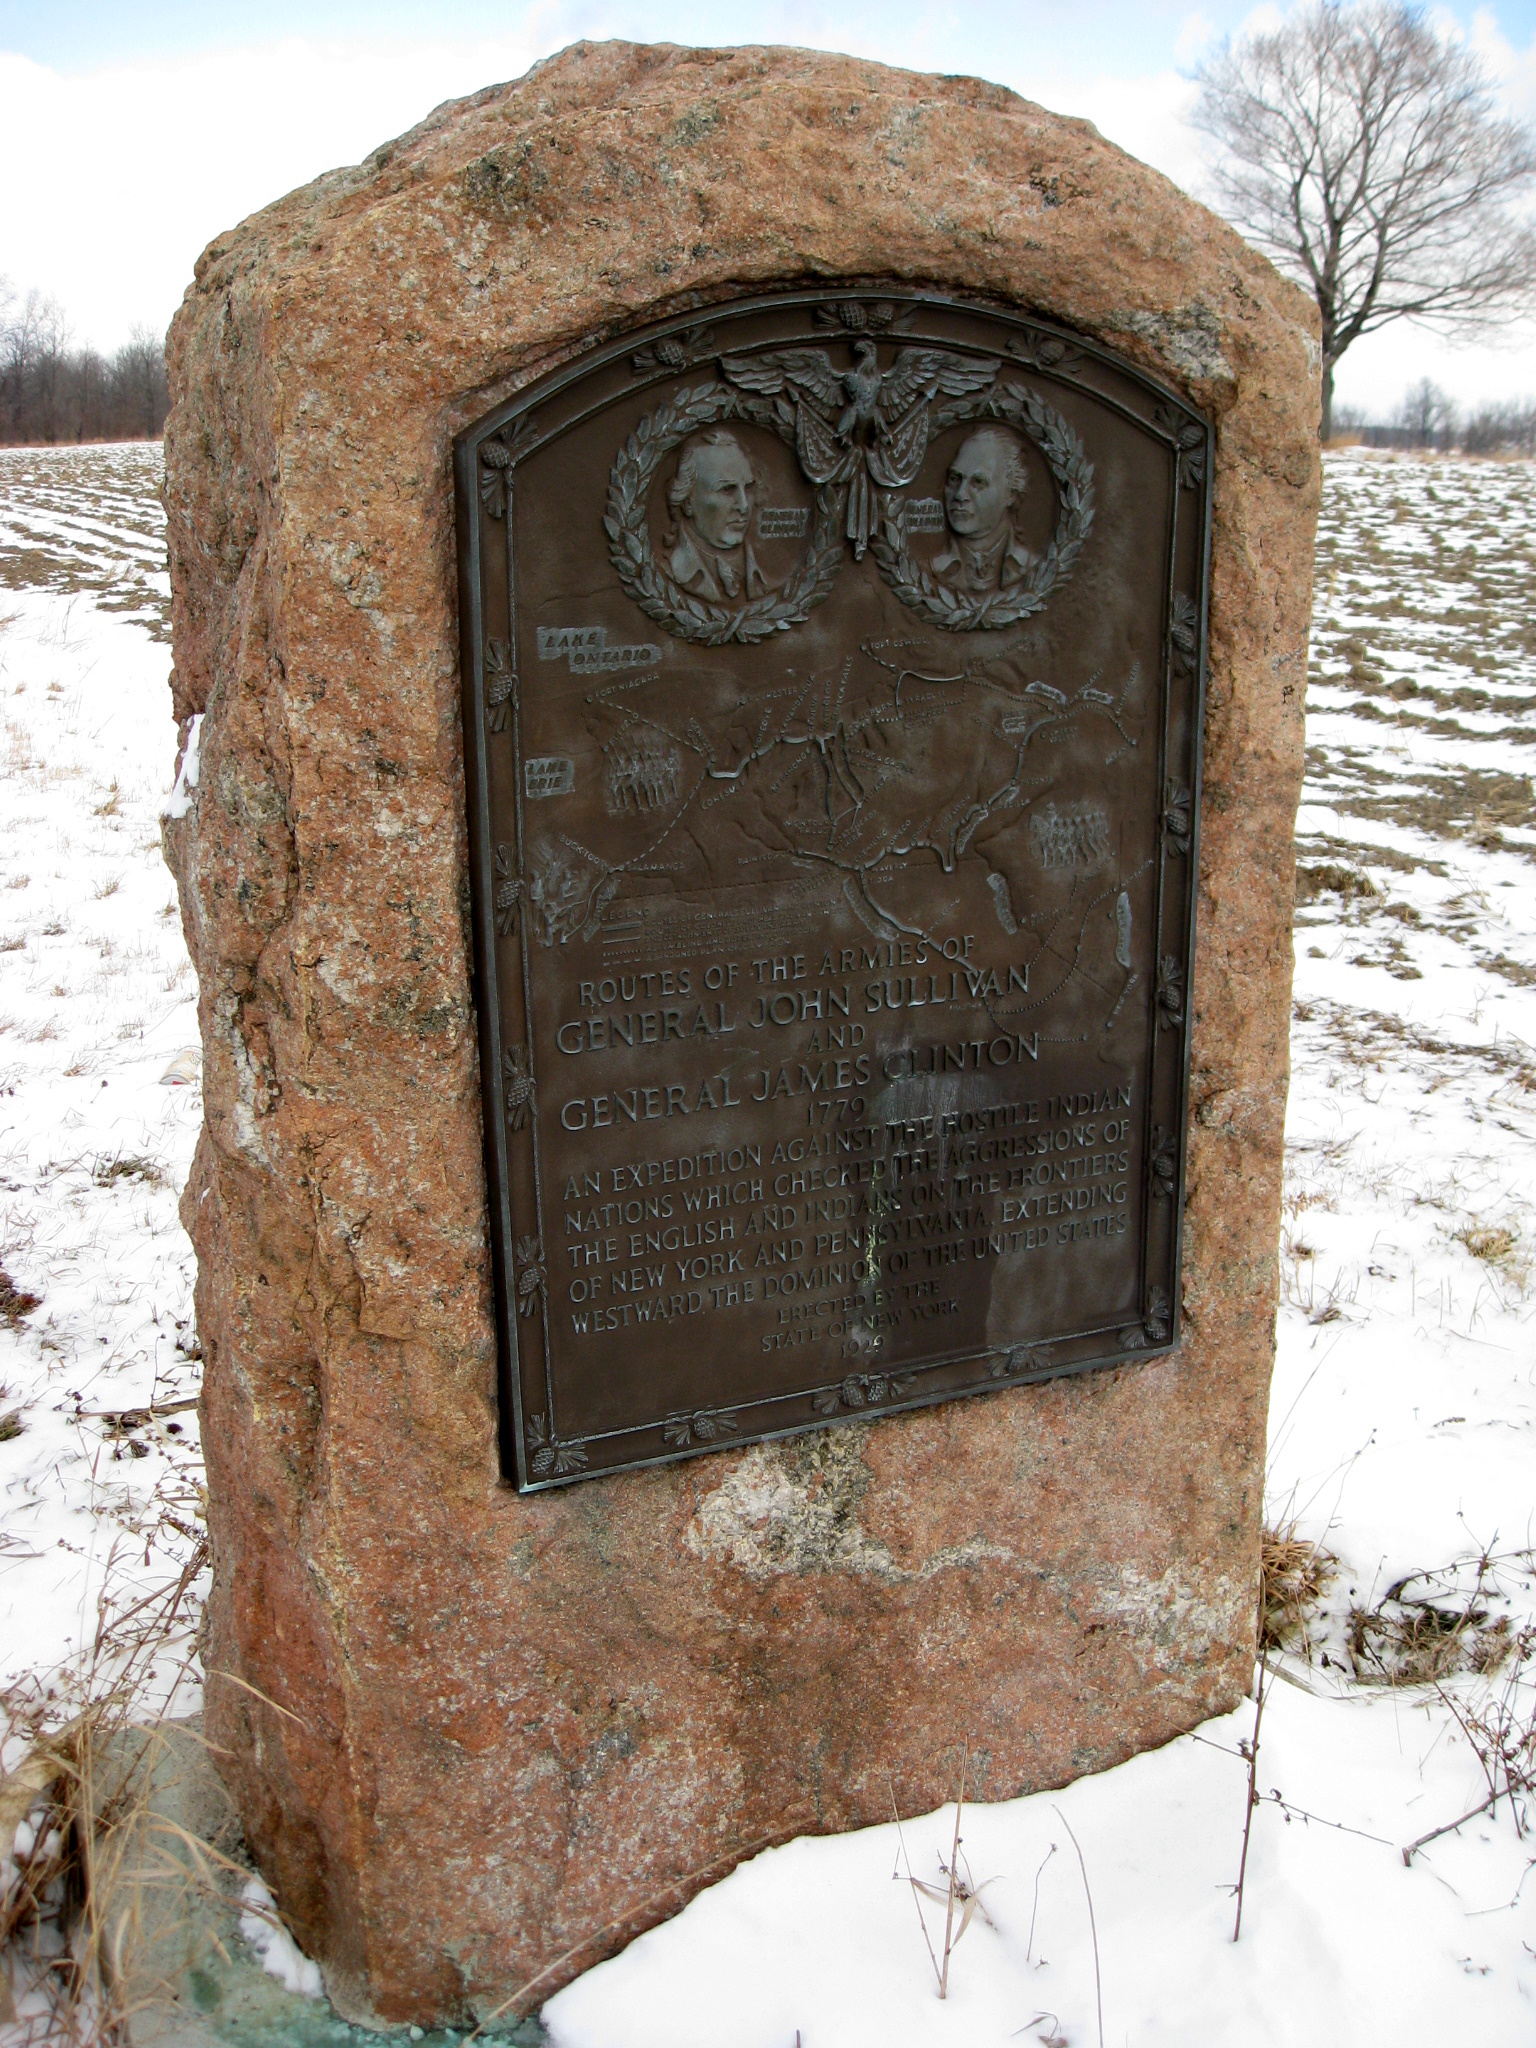 Commemorative plaque erected by the state of New York in 1929 of The Sullivan Expedition depicting the routes of the armies of General John Sullivan and General James Clinton. The plaque stands in Lodi, New York just of Rt. 414. Photo taken by Brian Adler on January 3, 2009.